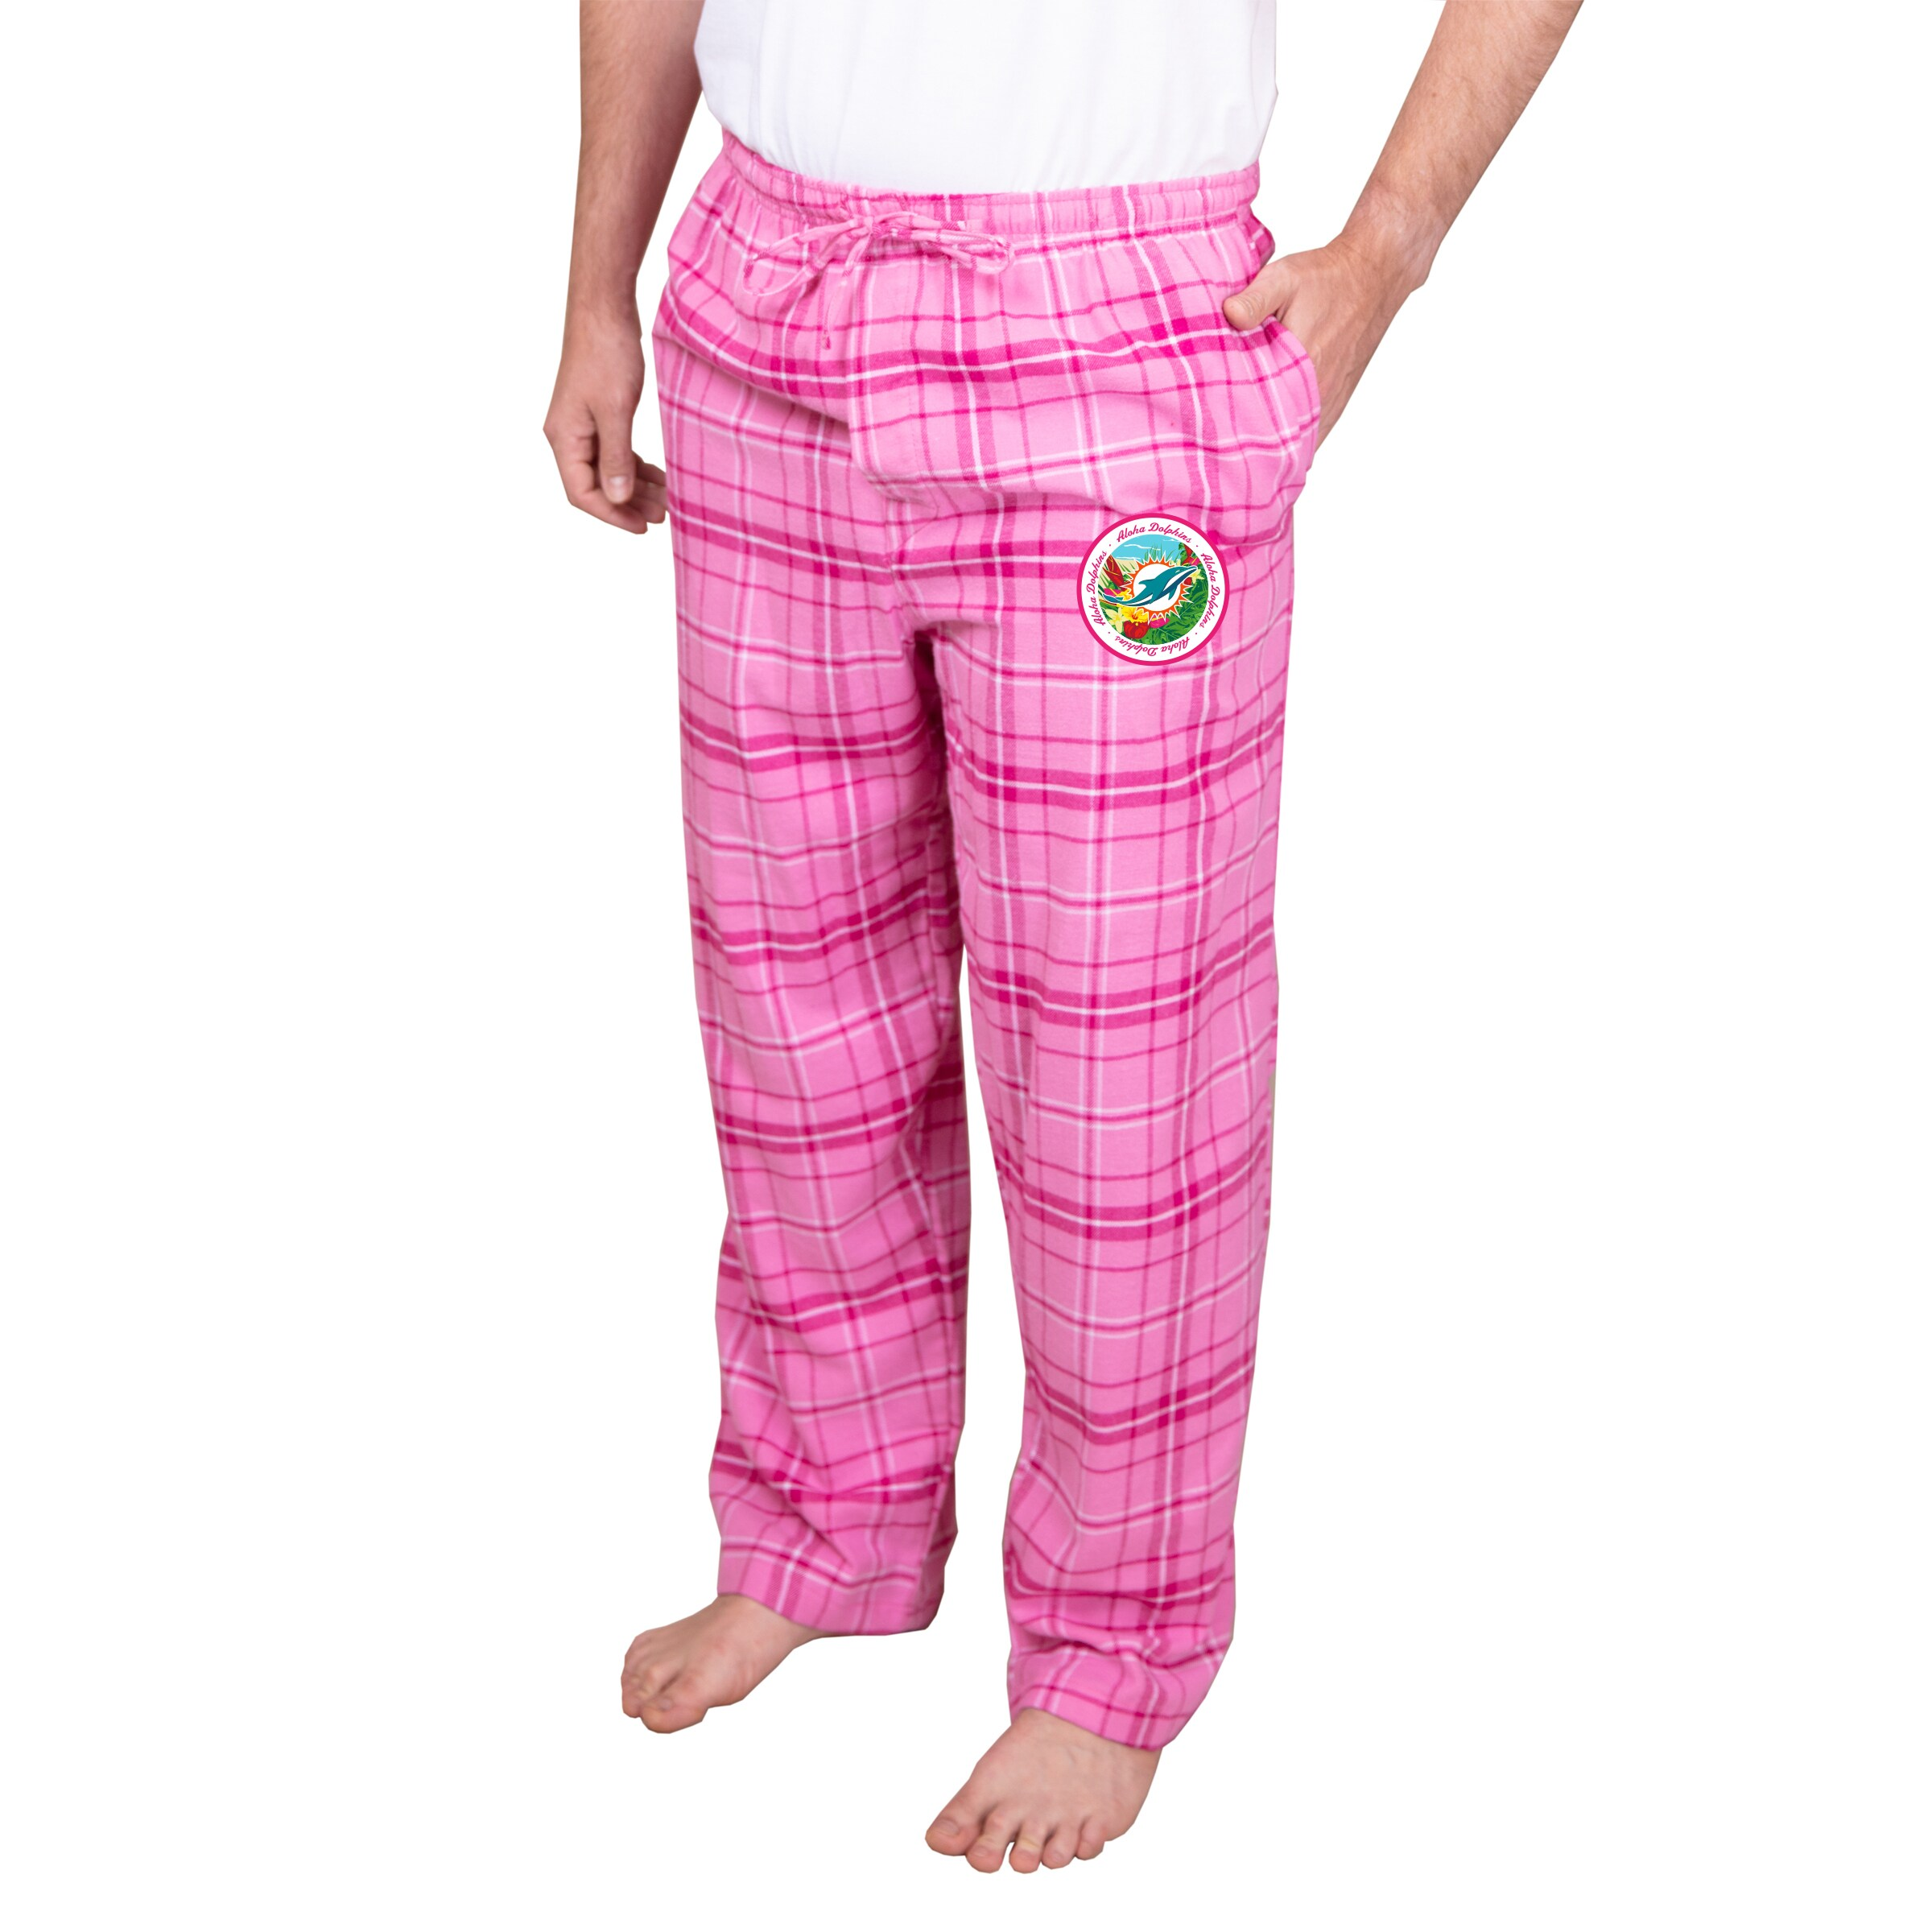 Miami Dolphins Concepts Sport Ultimate Pants - Pink